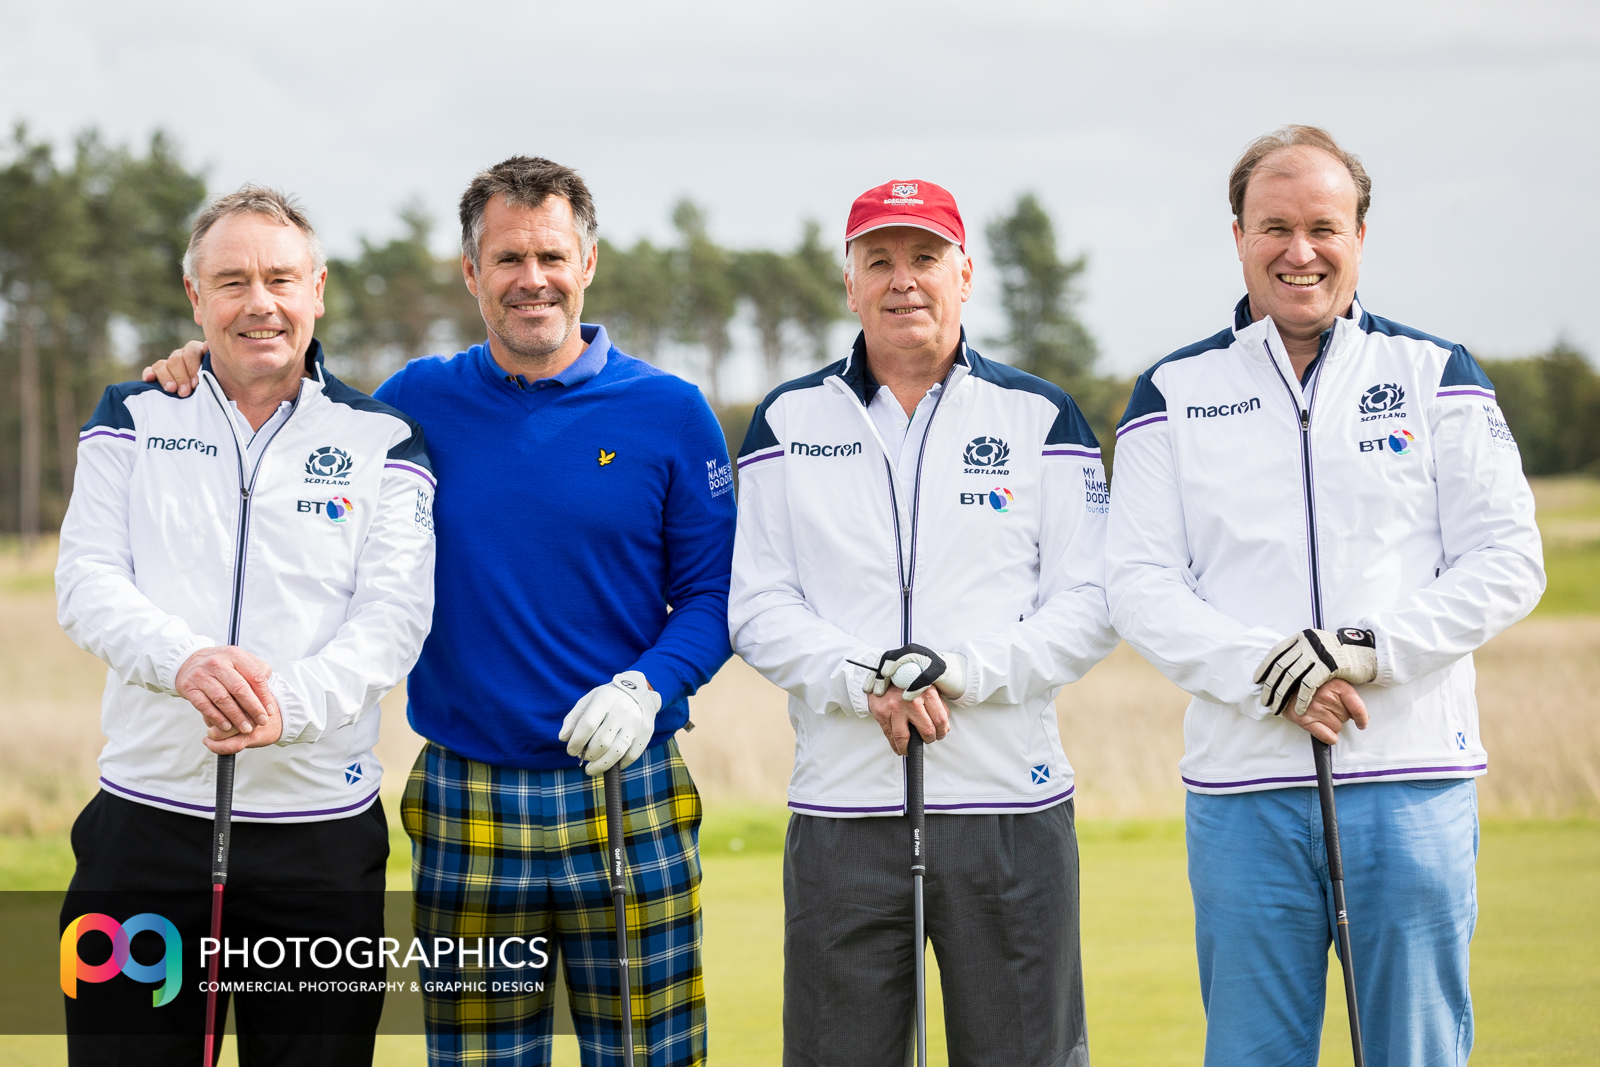 charity-golf-pr-event-photography-glasgow-edinburgh-scotland-11.jpg